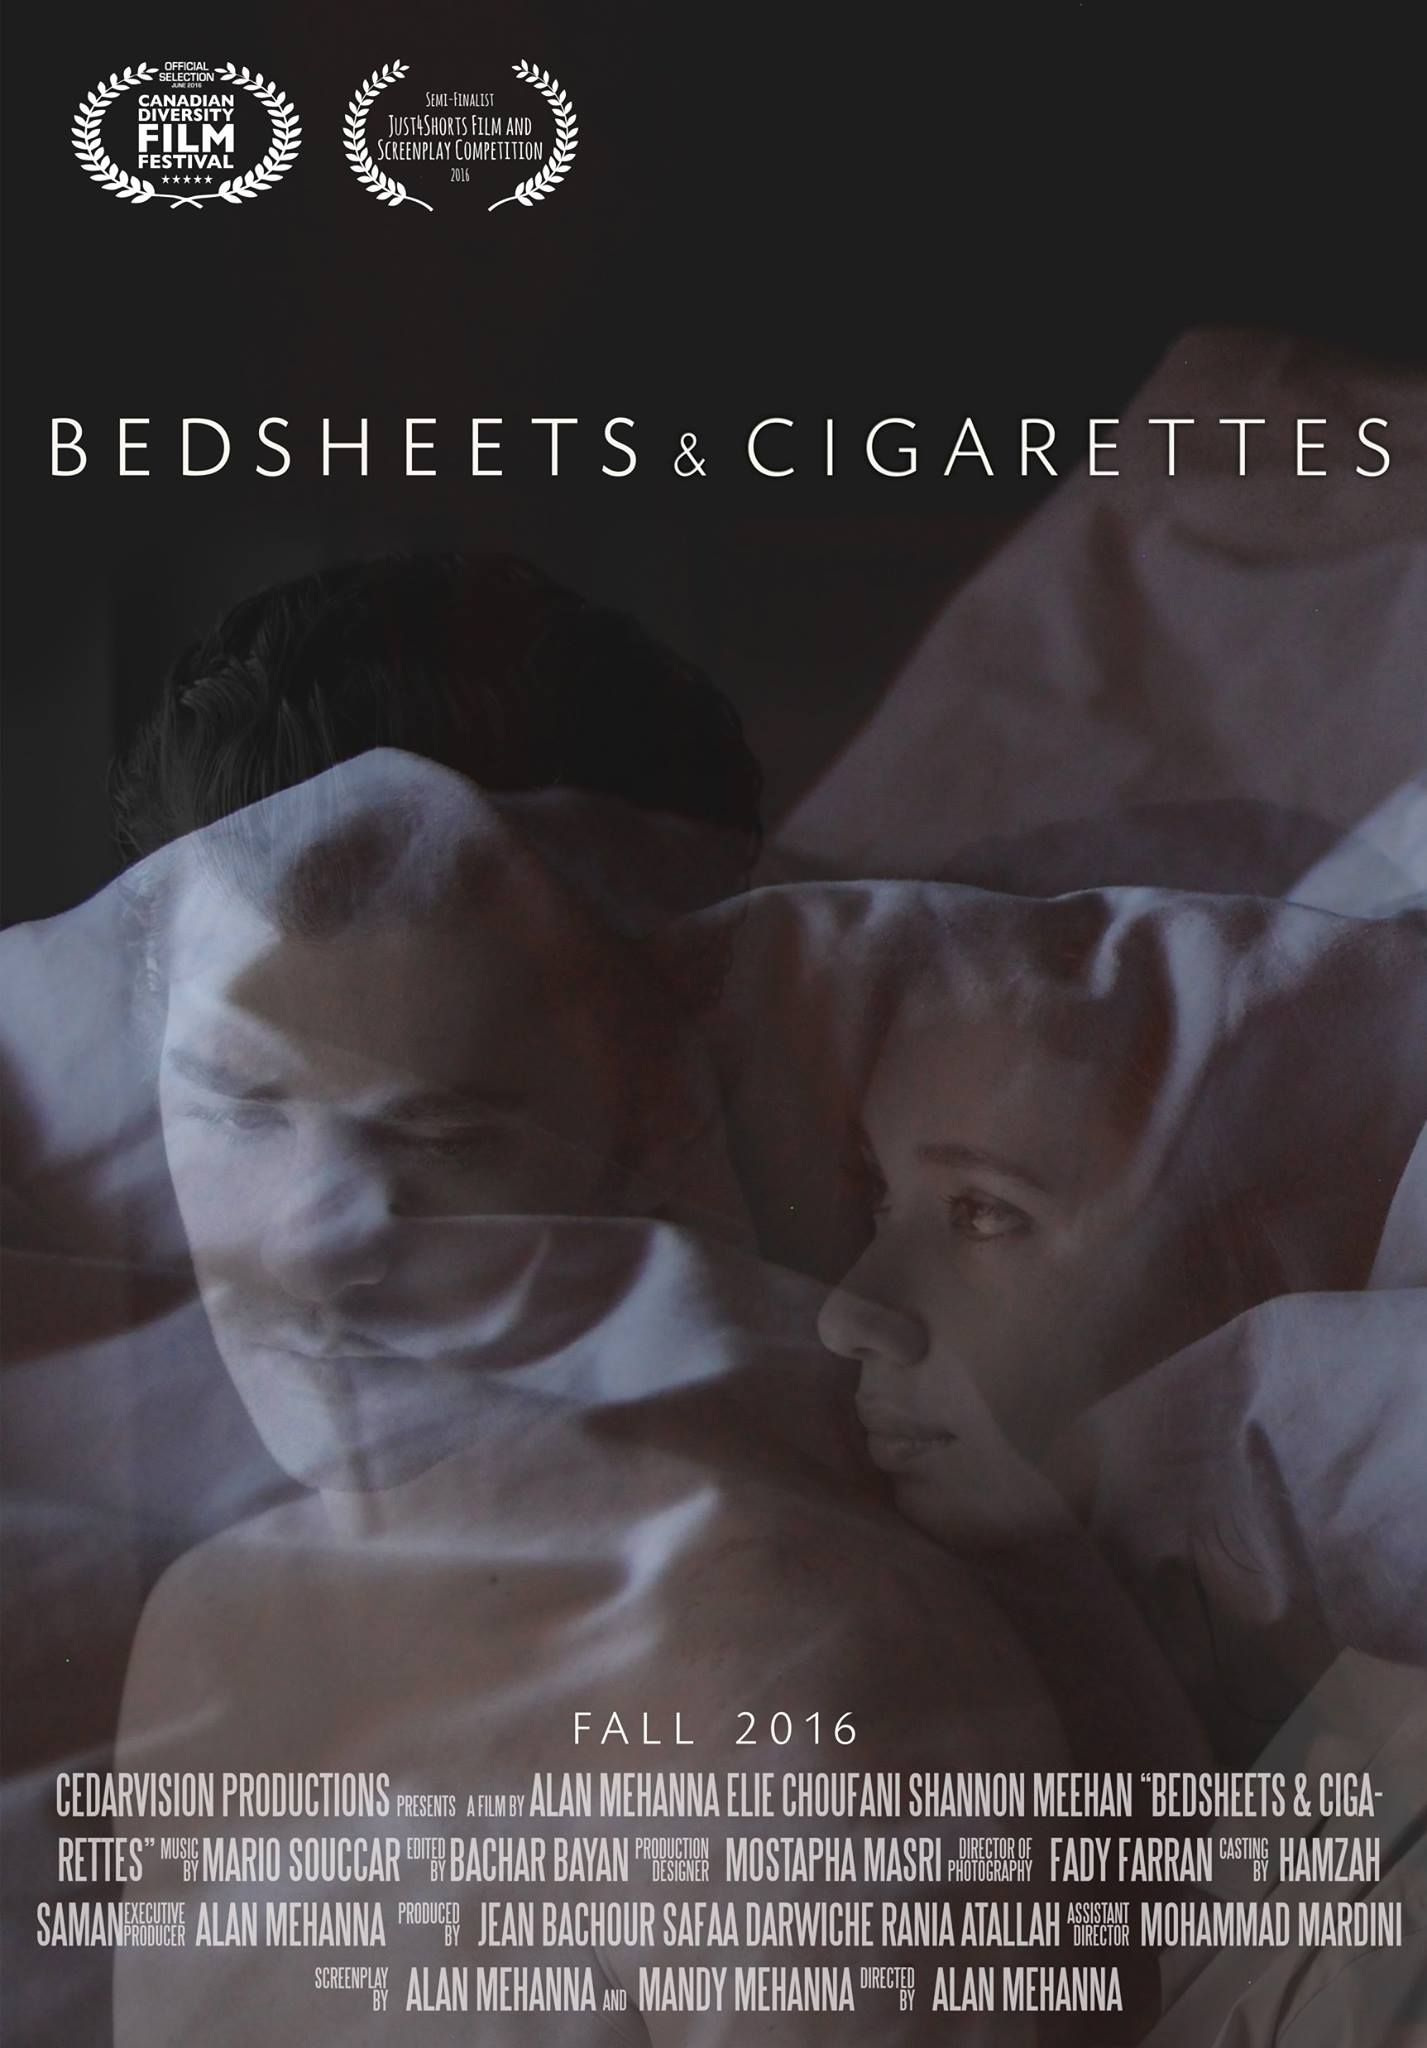 bedsheets and cigarettes